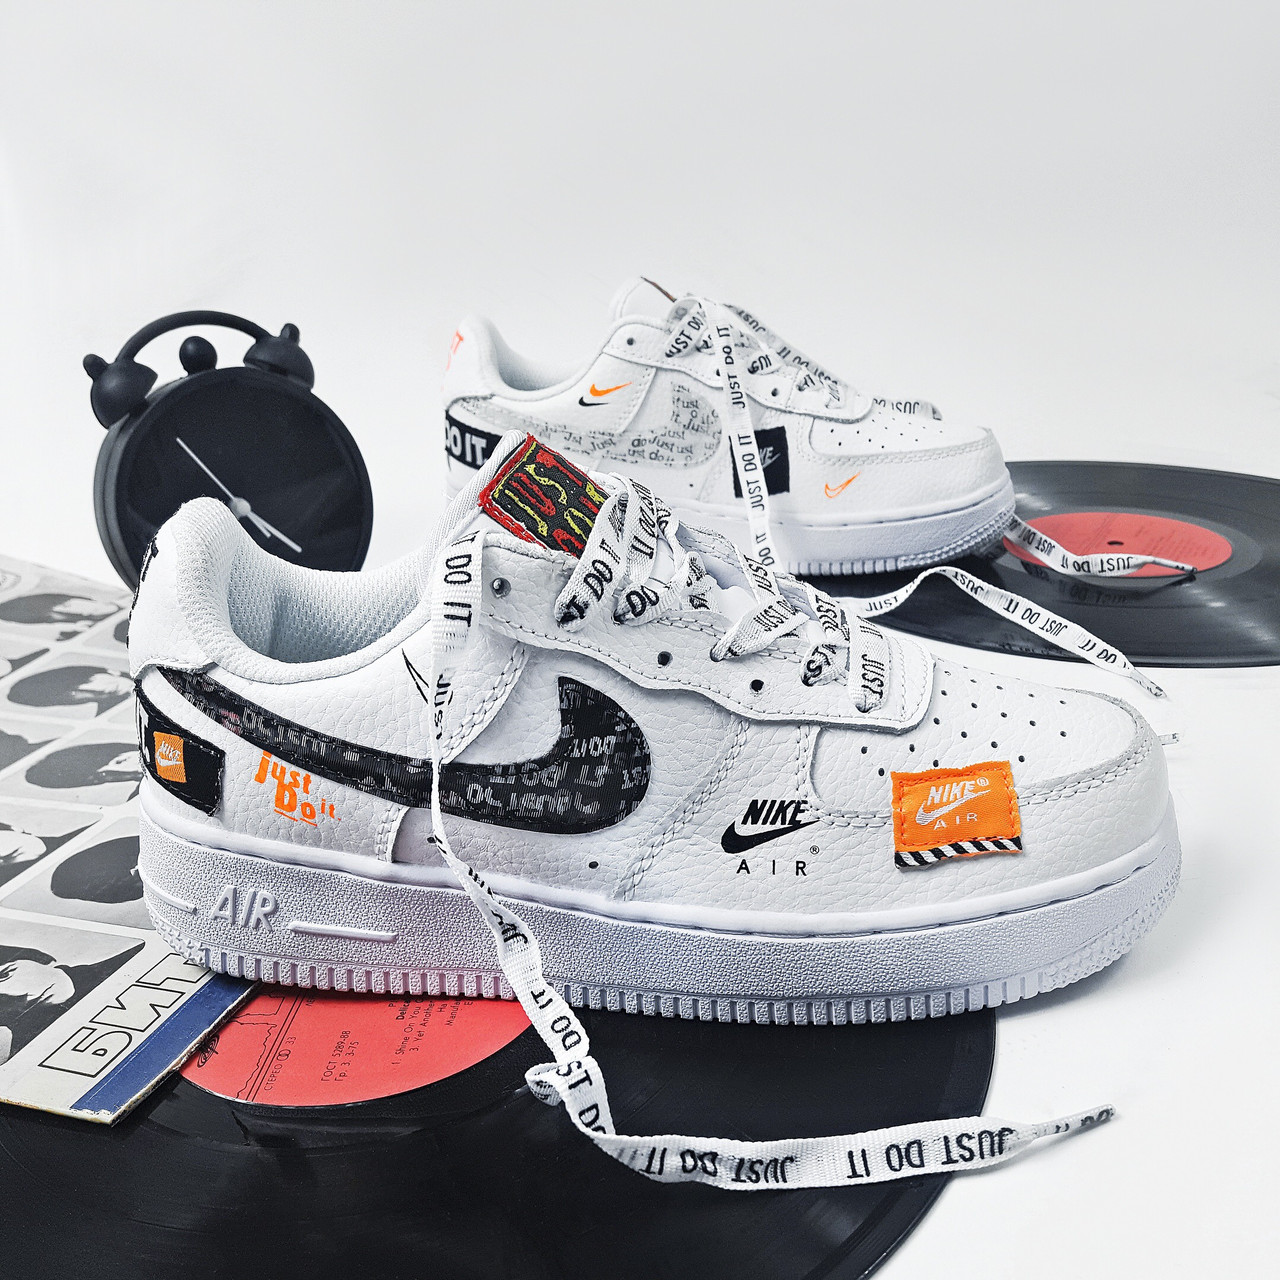 00d3819a Кроссовки Nike Air Force 1 Just Do It White - Интернет-Магазин IMPERIAL  STORE в